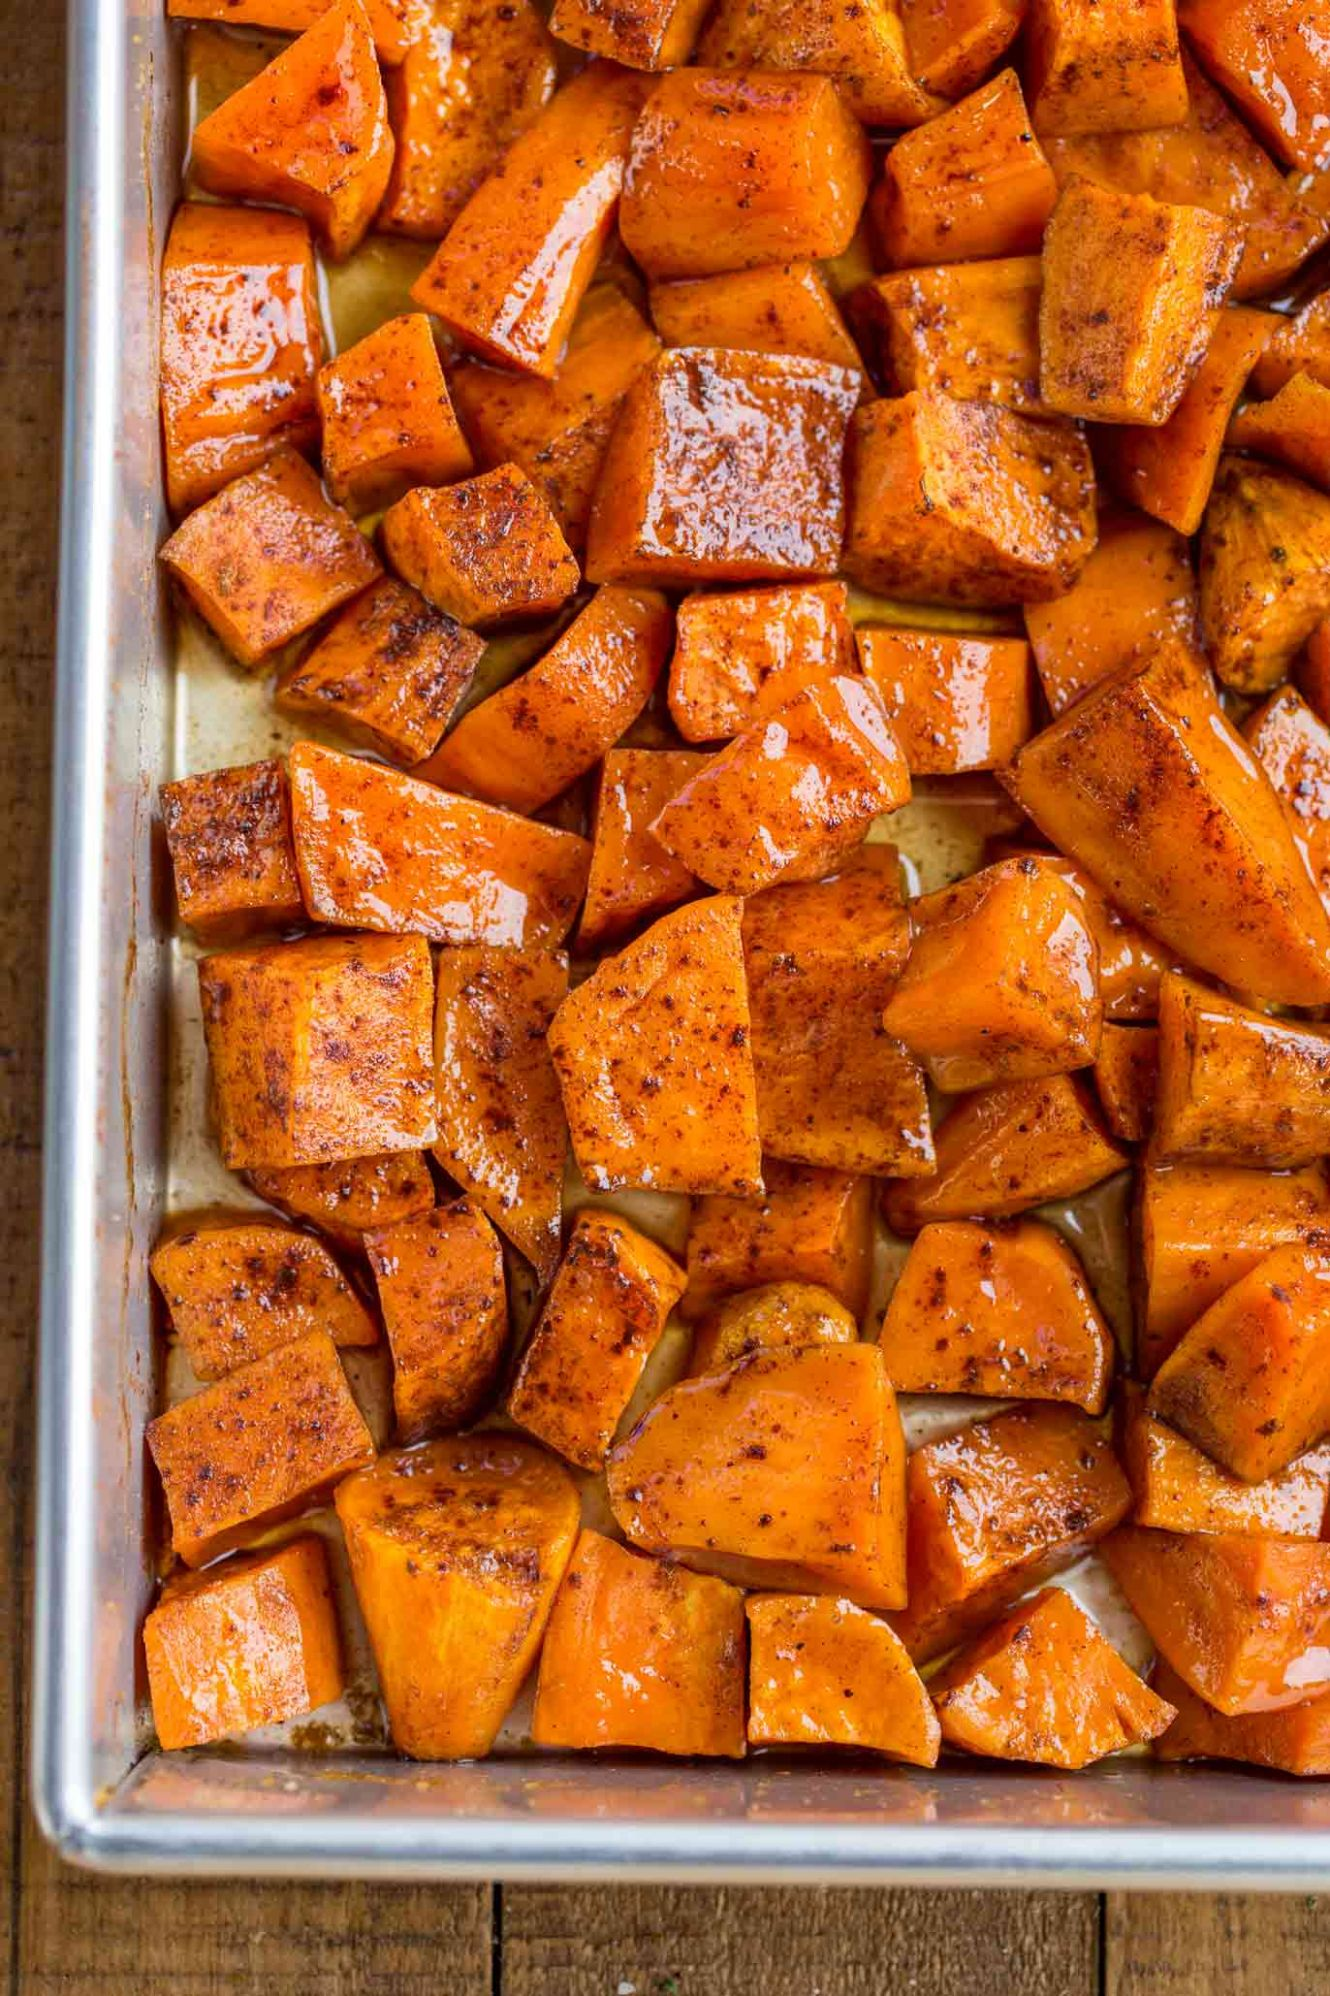 Candied Yams - Dinner, then Dessert - Simple Yam Recipes